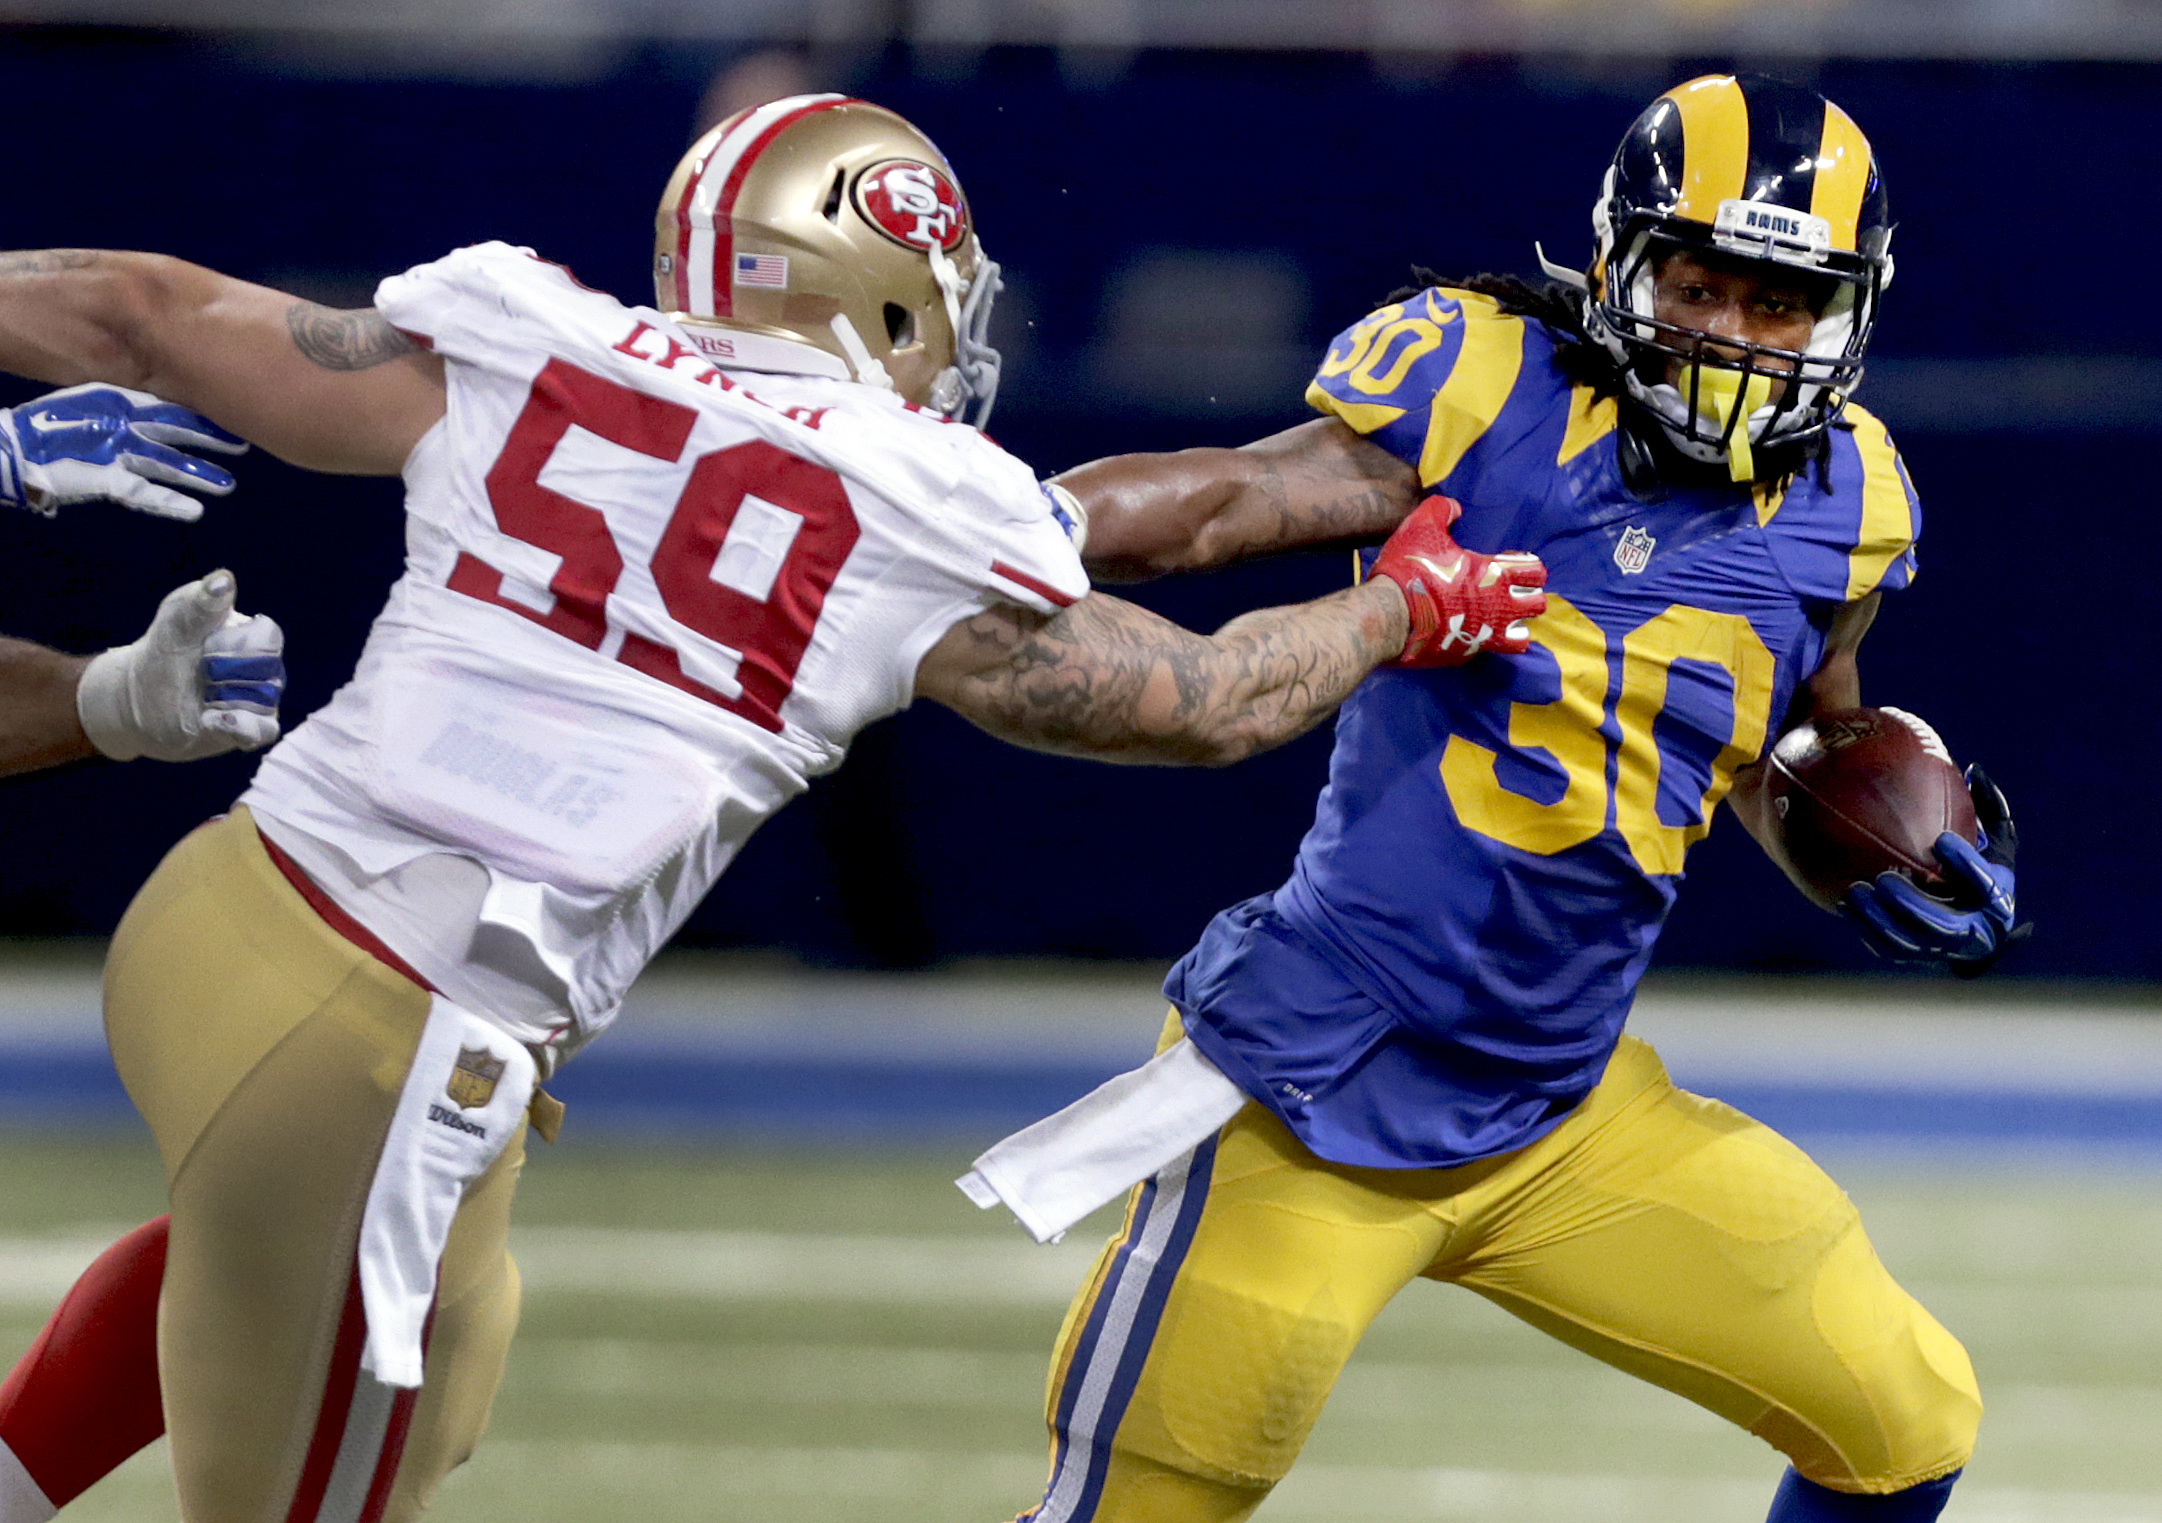 St. Louis Rams running back Todd Gurley, right, runs with the ball as San Francisco 49ers outside linebacker Aaron Lynch defends during the third quarter of an NFL football game Sunday, Nov. 1, 2015, in St. Louis. (AP Photo/Tom Gannam)